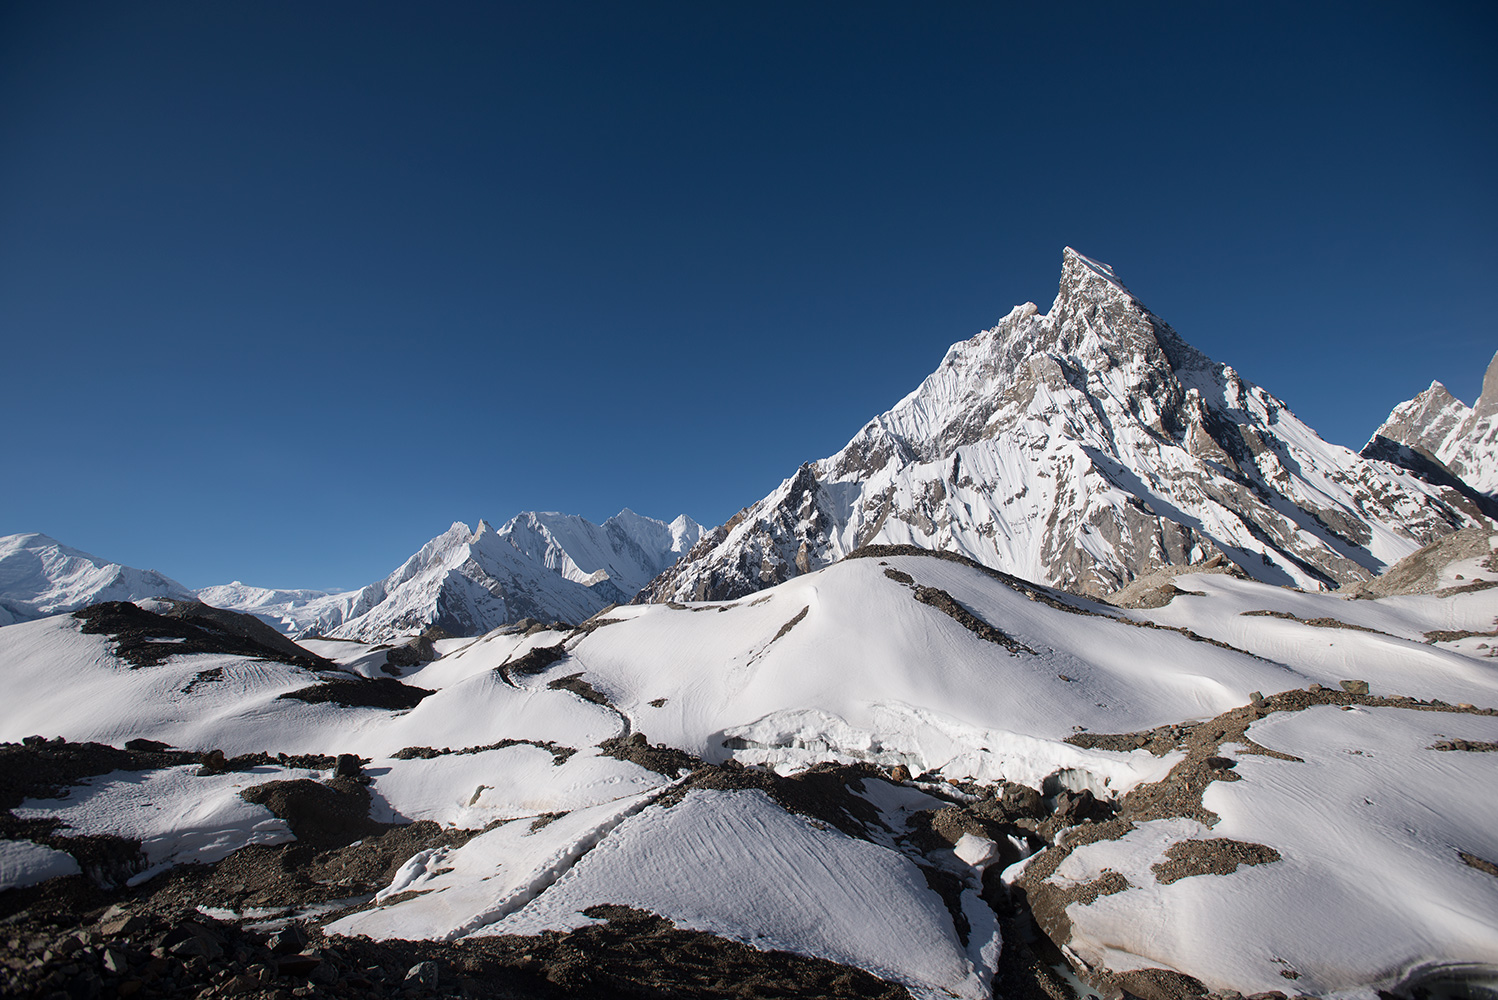 The further you get from Concordia towards Broad Peak base camp, the more the view up the Baltoro opens up. On the left is the Golden Throne aka Baltoro Kangri, and centre is Bride Peak aka Chogolisa. Left of centre, over the visible Kondus Saddle is Kondus (6756M) which is actually in India. At the risk of offending people on both sides, I will say that it is lamentable that this area has so long been the subject of petty squabbles and skirmishes, and that the entire range should be de-militarised and made a zone of peace. Open to everyone!